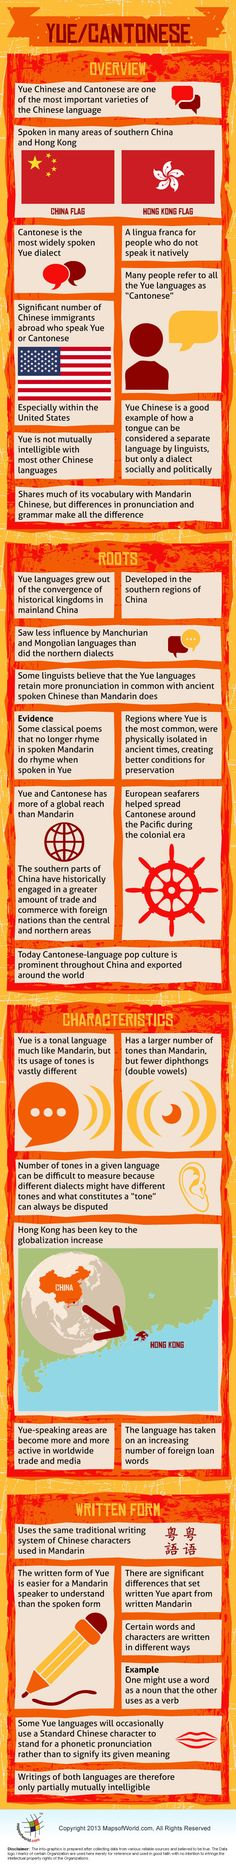 Infographic of Yue/Cantonese Language